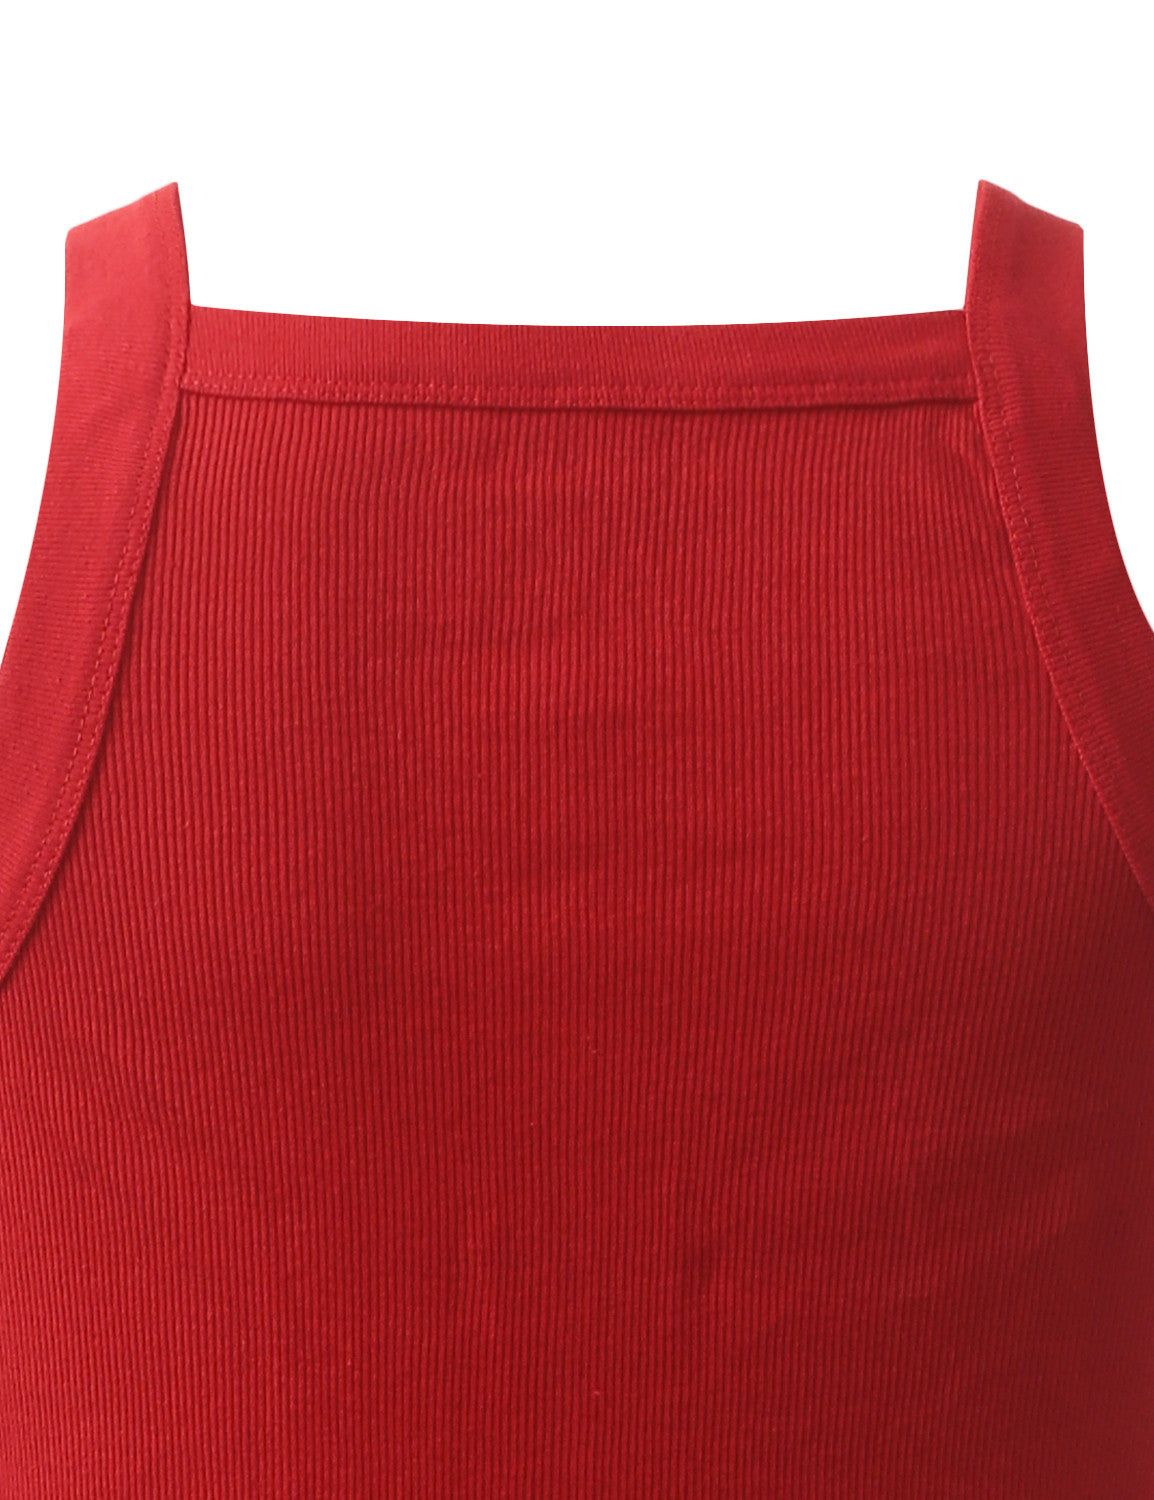 RED SQUARE NECK TANK TOP